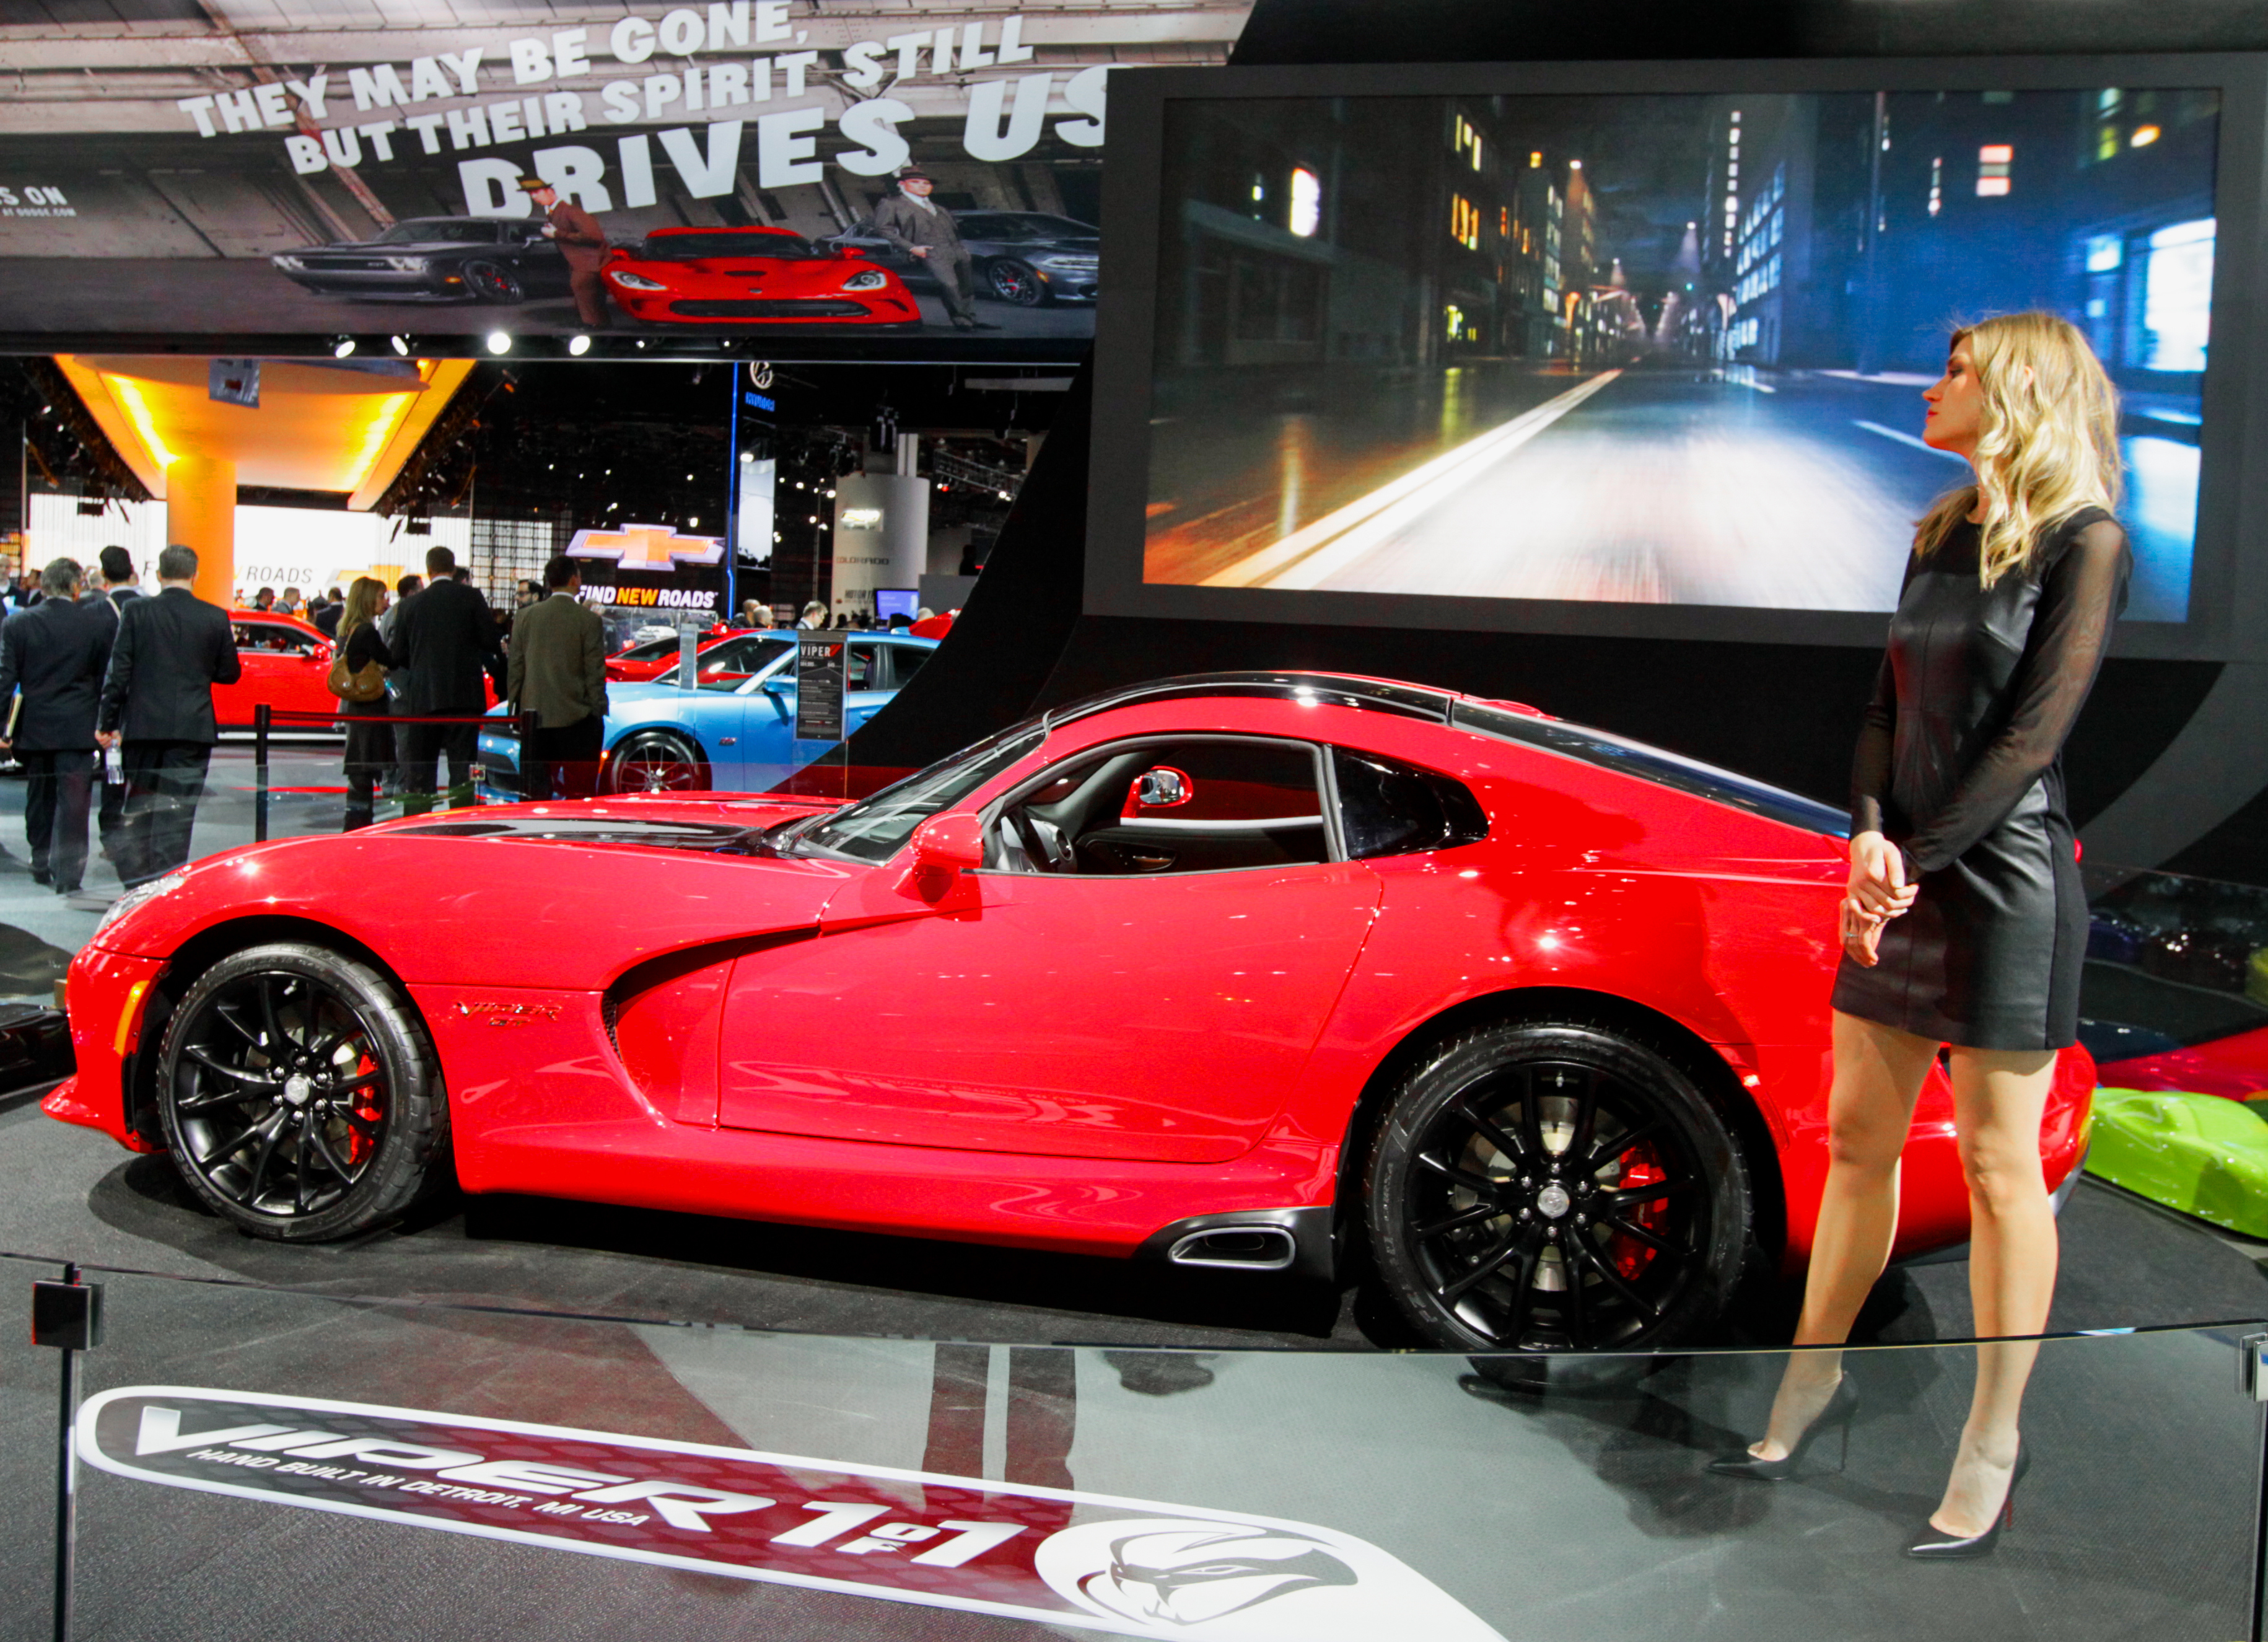 North American International Auto Show appeals to both car, technology enthusiasts - The Blade